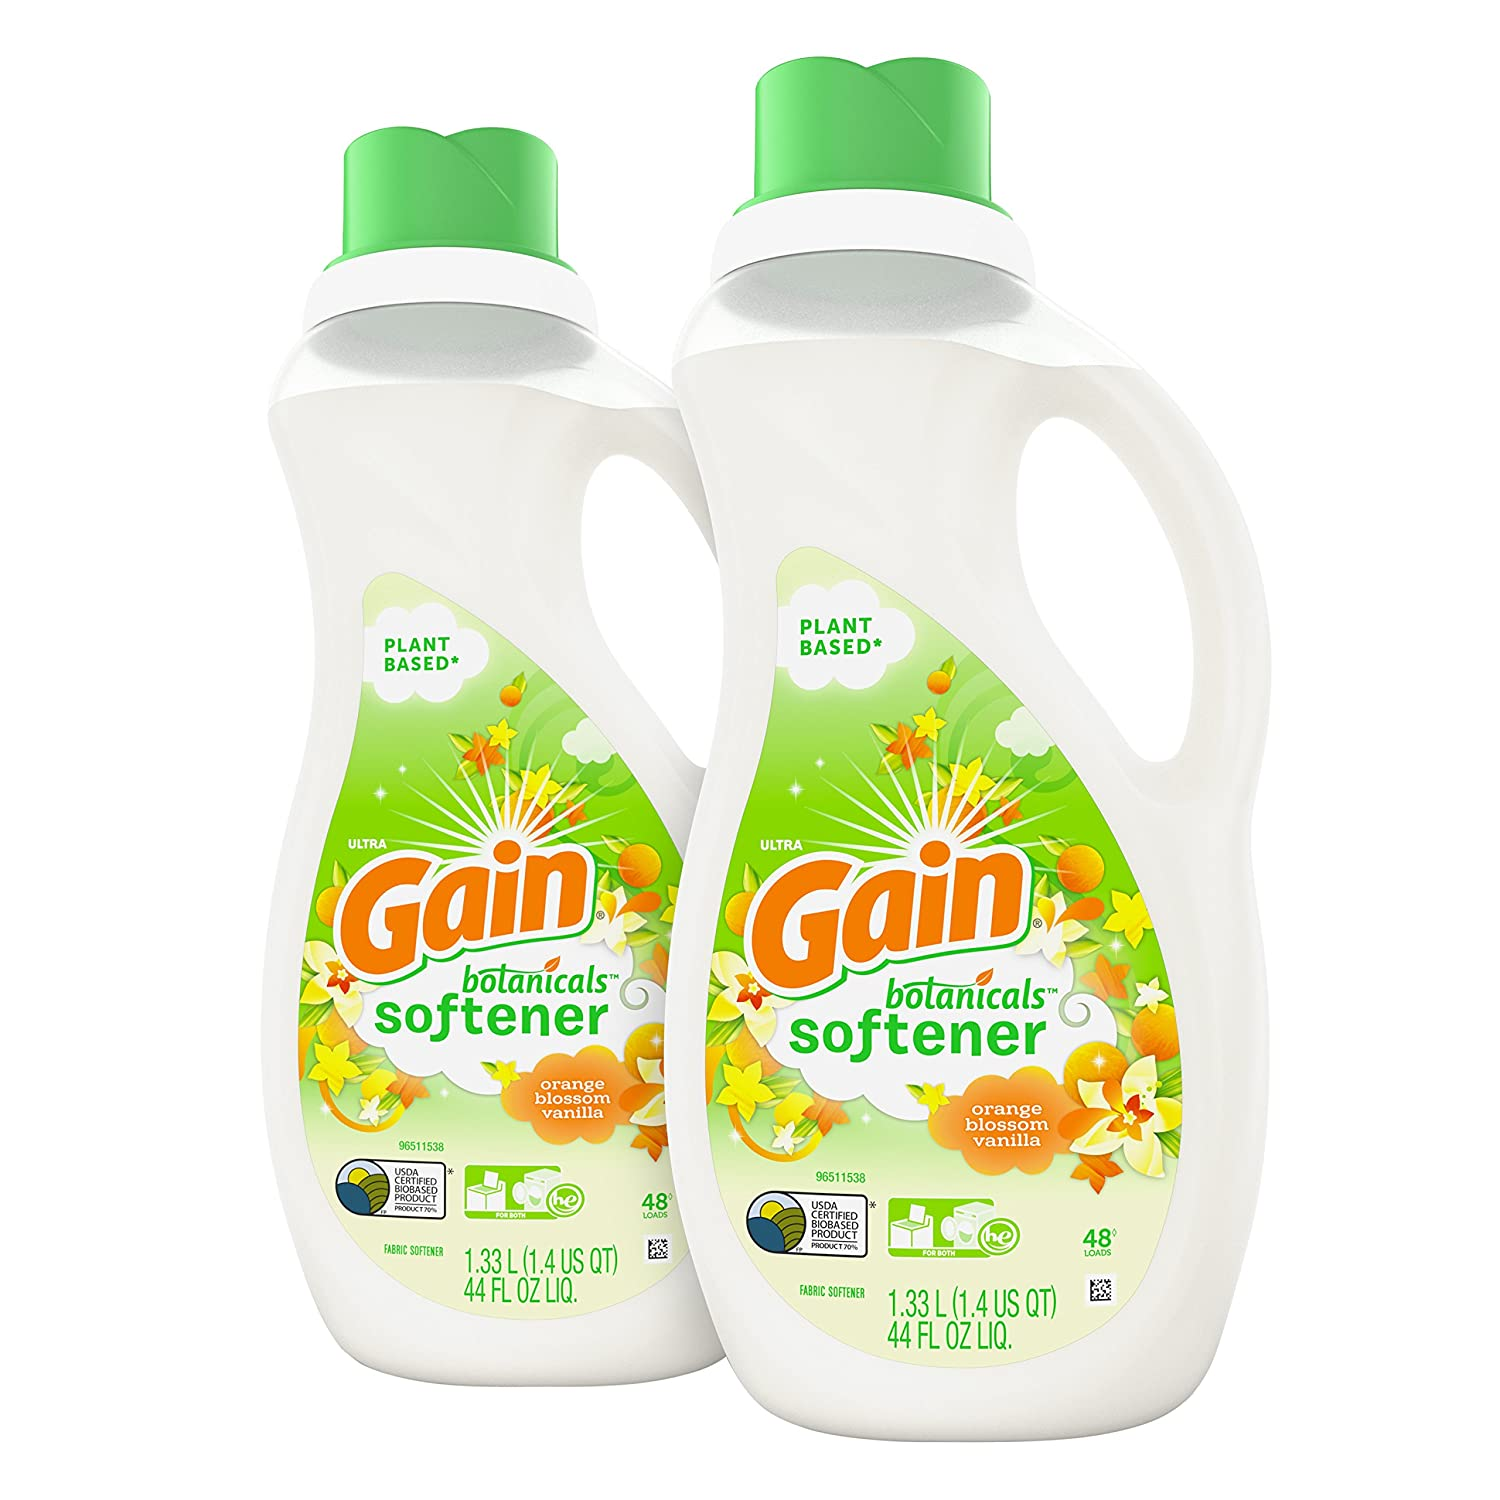 Gain Botanicals Liquid Fabric Softener, Orange Blossom Vanilla, 2 Count